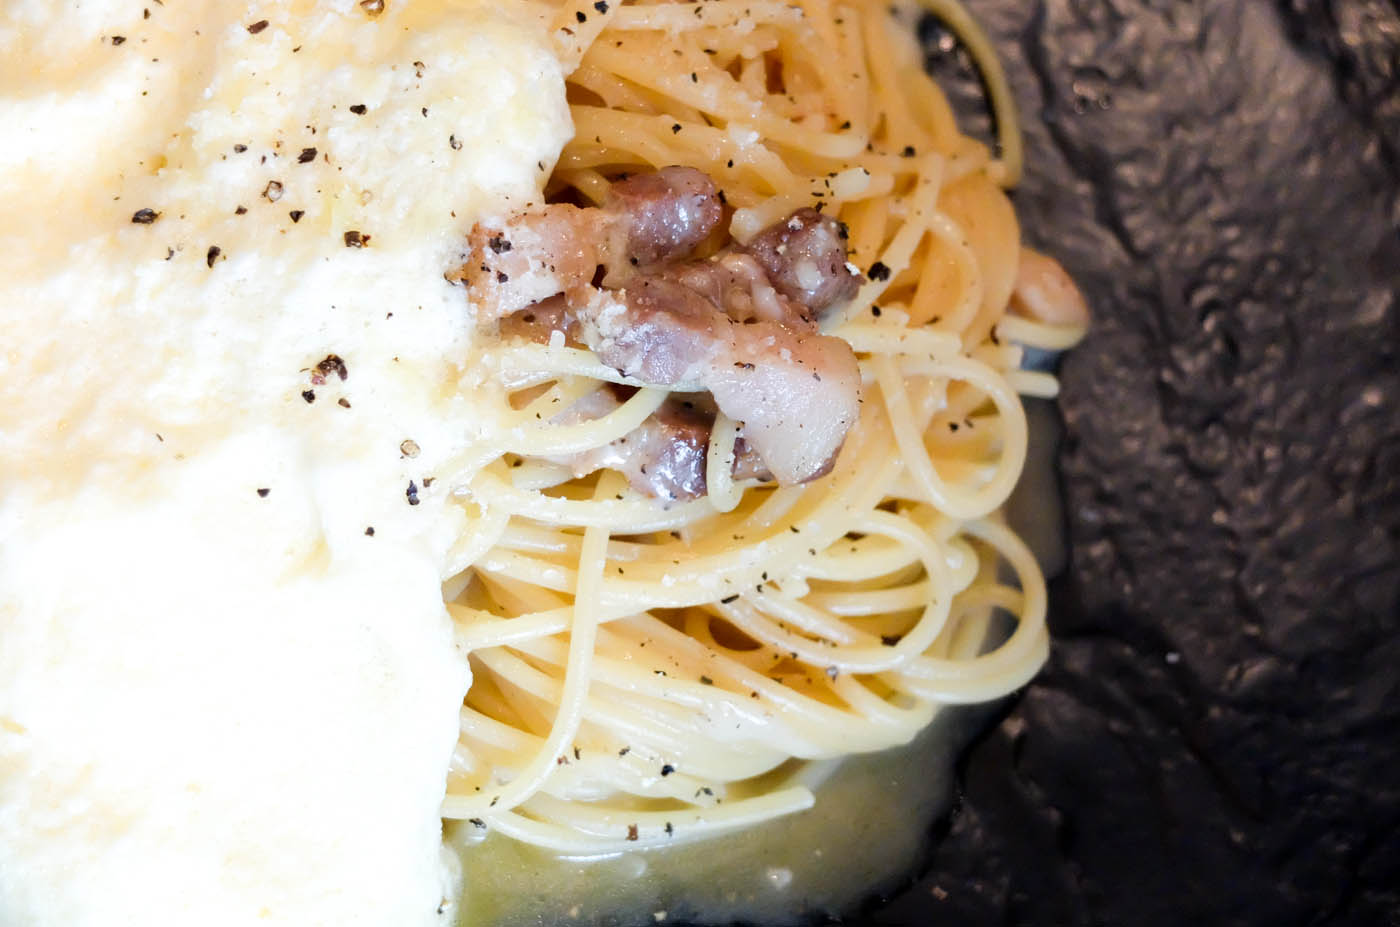 PASTA. Salvatore Cuomou2019s take on the traditional carbonara is light and very tasteful